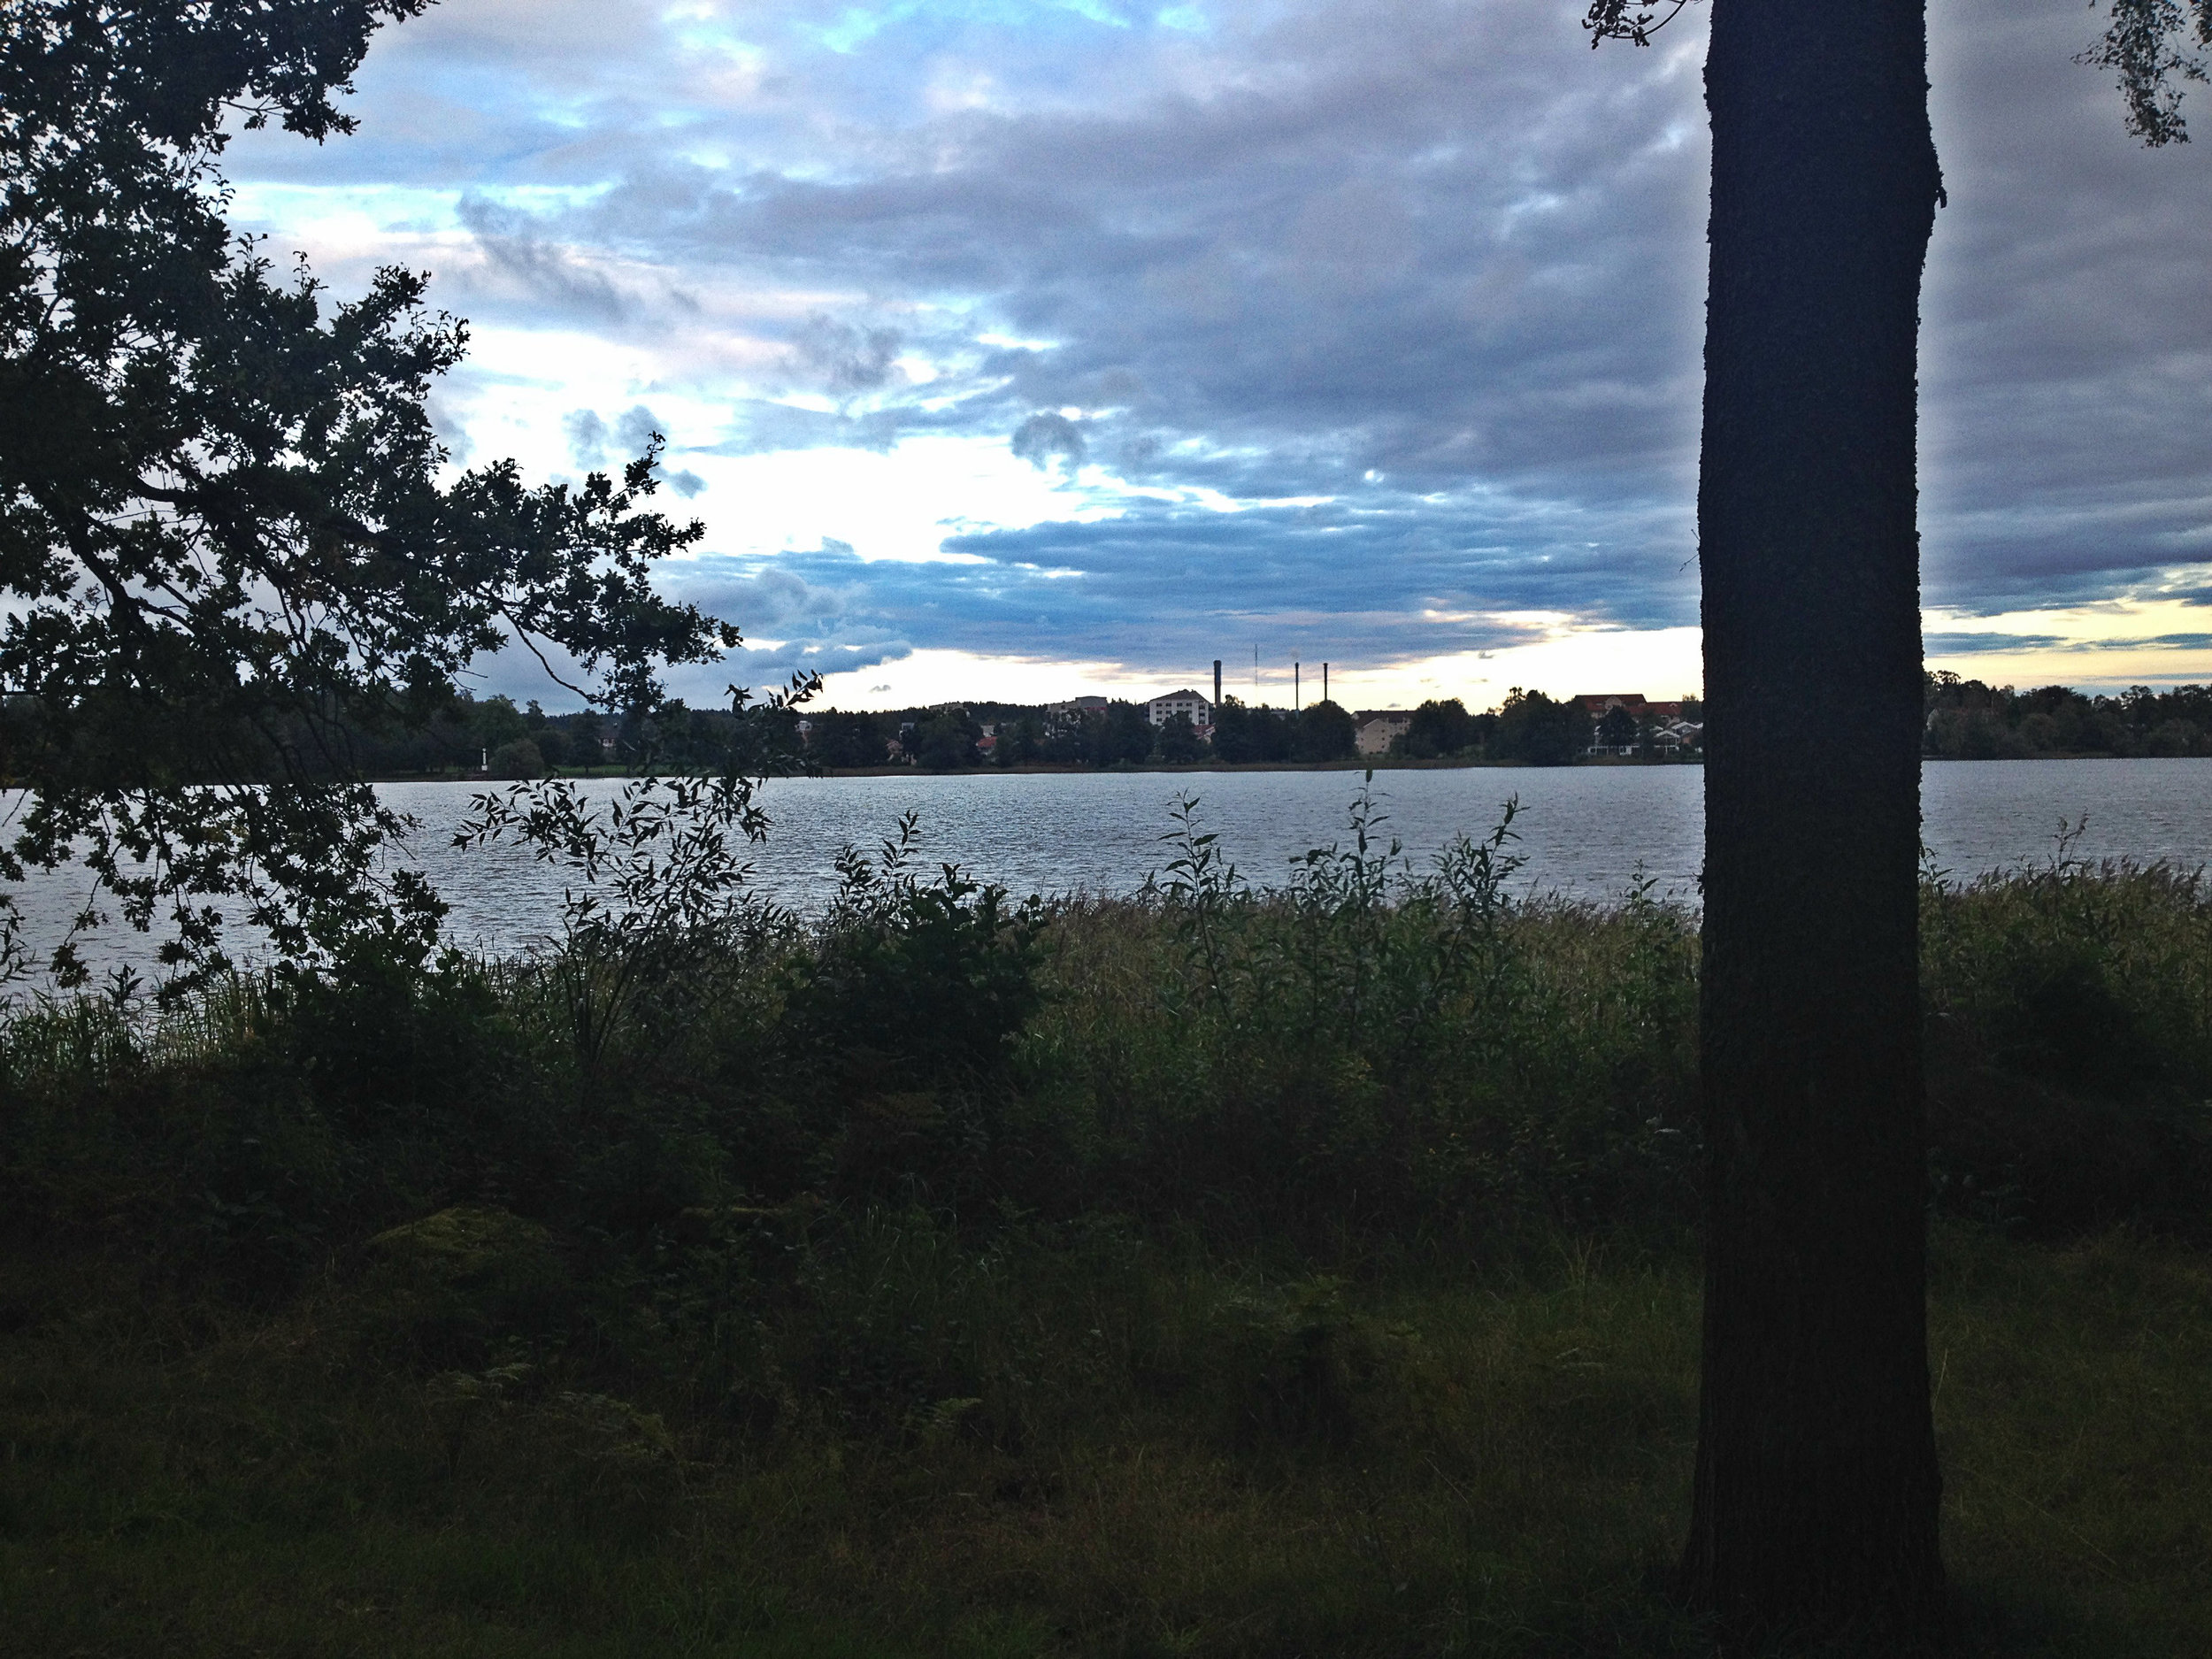 This is the amazing lake and view we bike by everyday on the way to campus. It is so breathtakingly gorgeous.